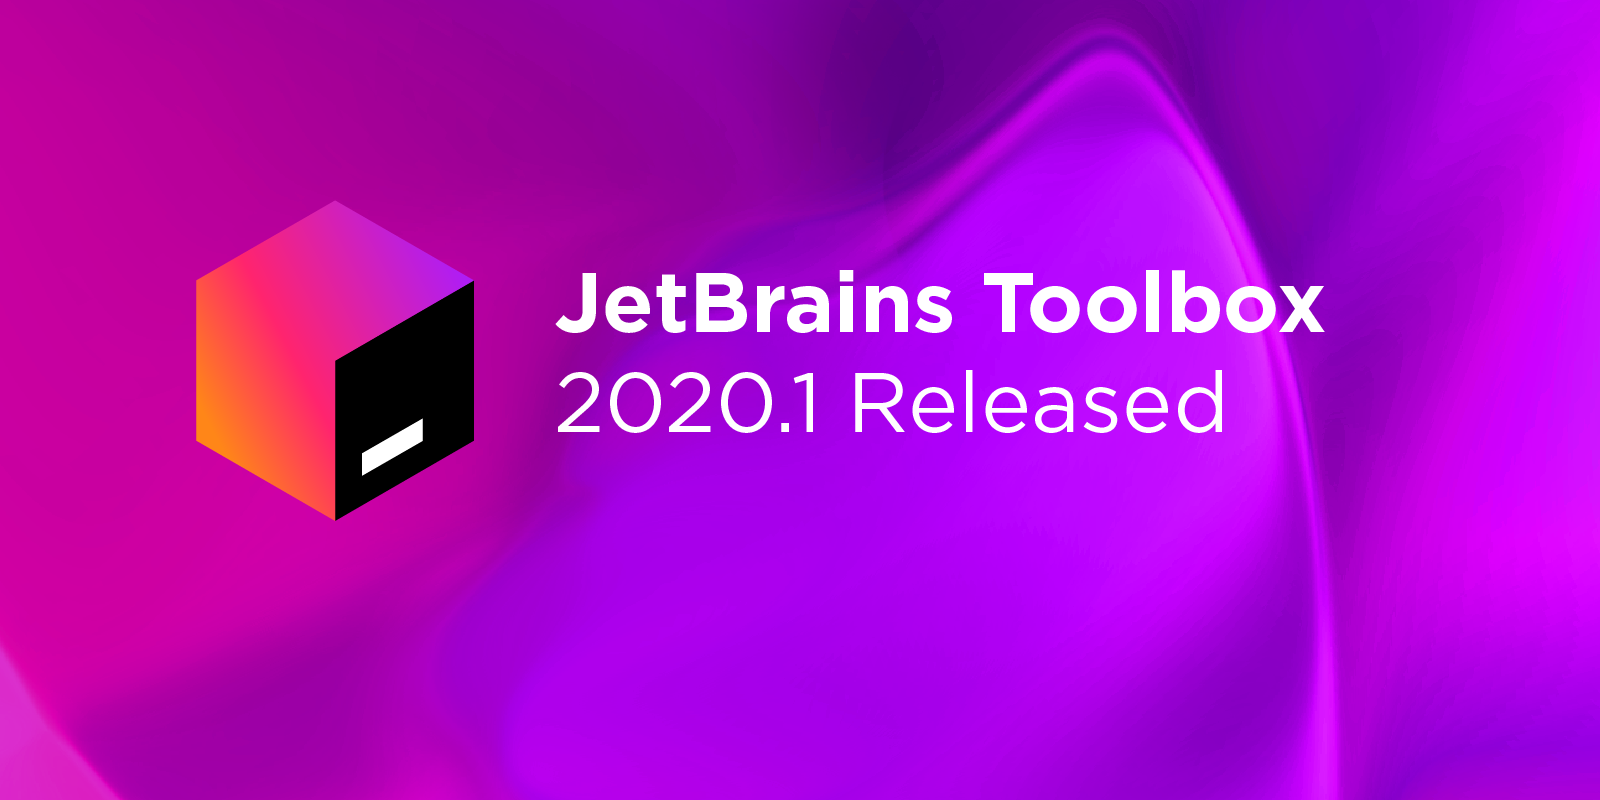 JetBrains Toolbox 2020.1